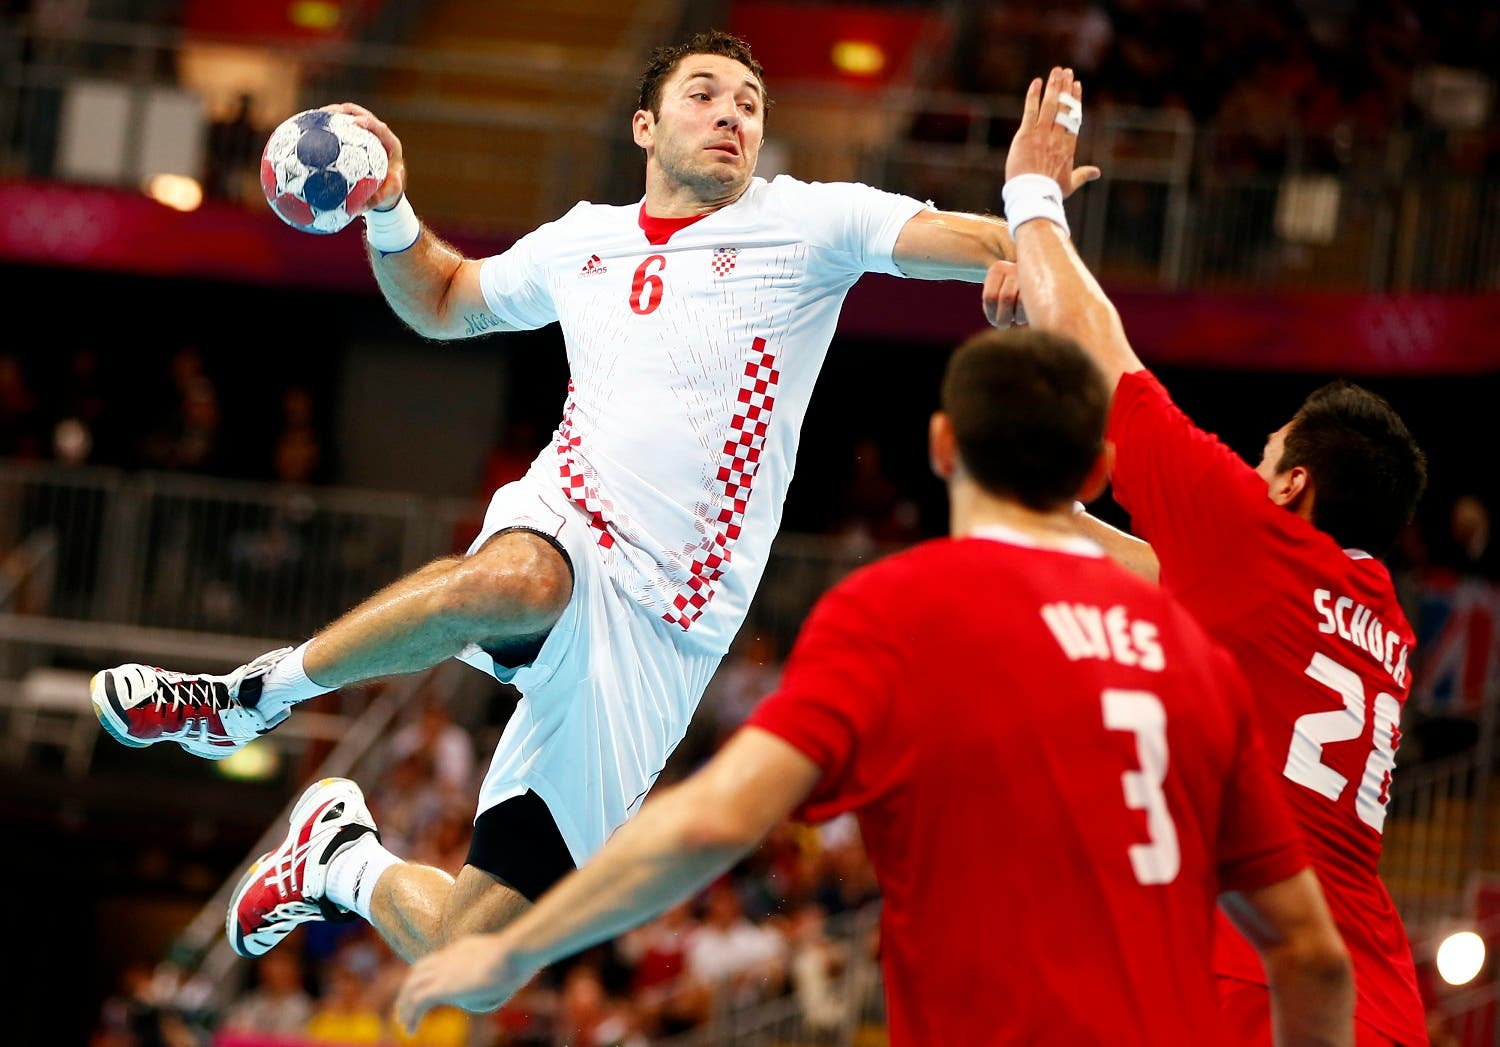 Croatia's Blazenko Lackovic scores against Hungary during their men's bronze medal handball match during the London 2012 Olympic Games at the Basketball Arena August 12, 2012. REUTERS